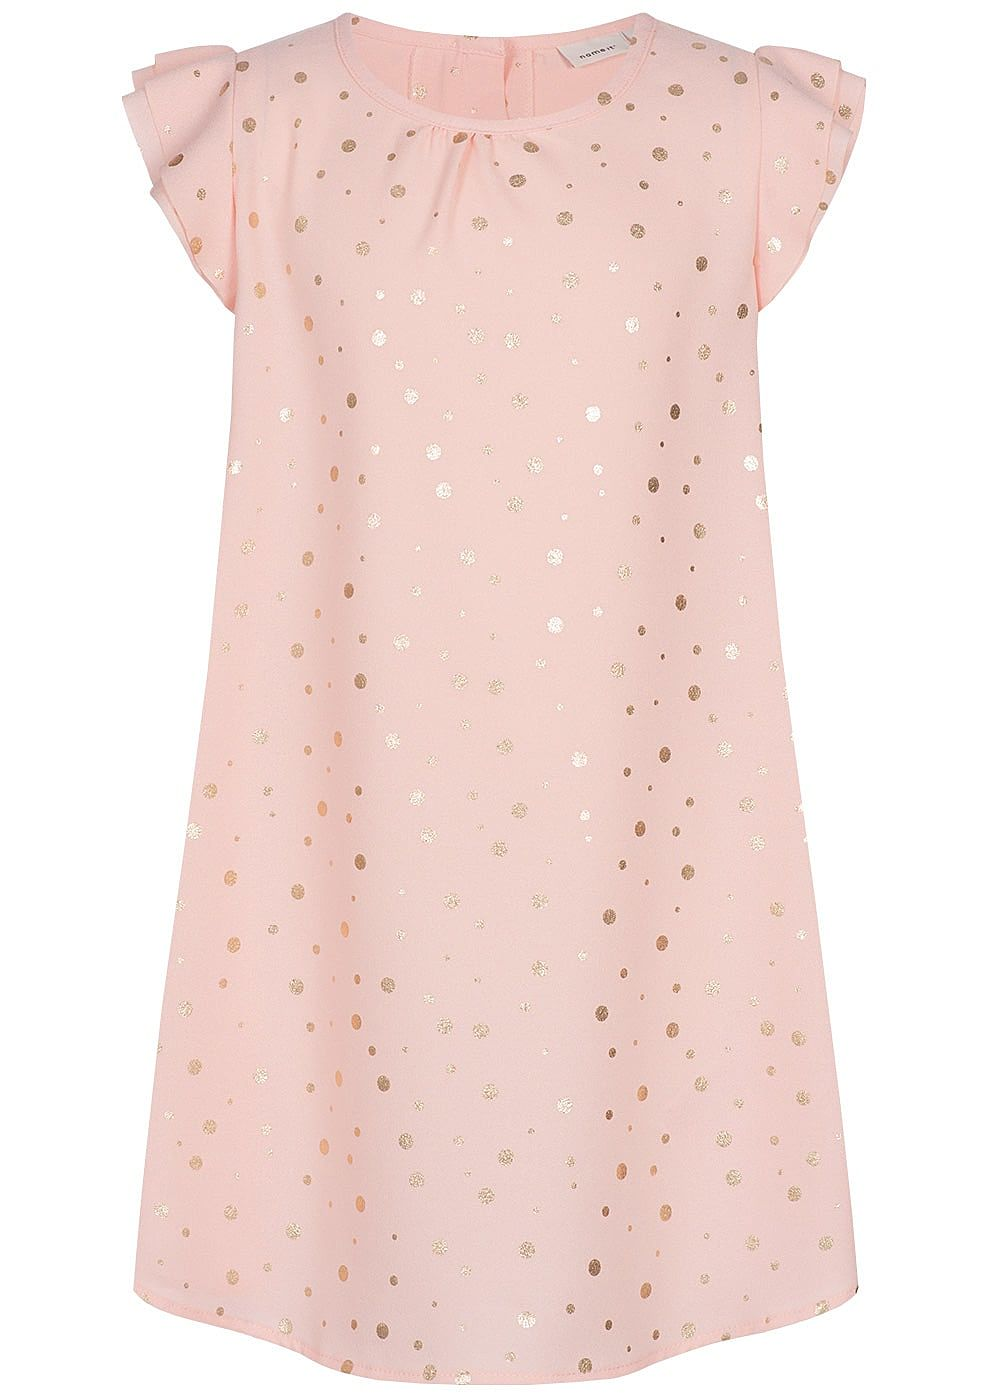 Name It Kids Mädchen Dress Points Print strawberry cream rosa gold - Art.-Nr.: 19041461